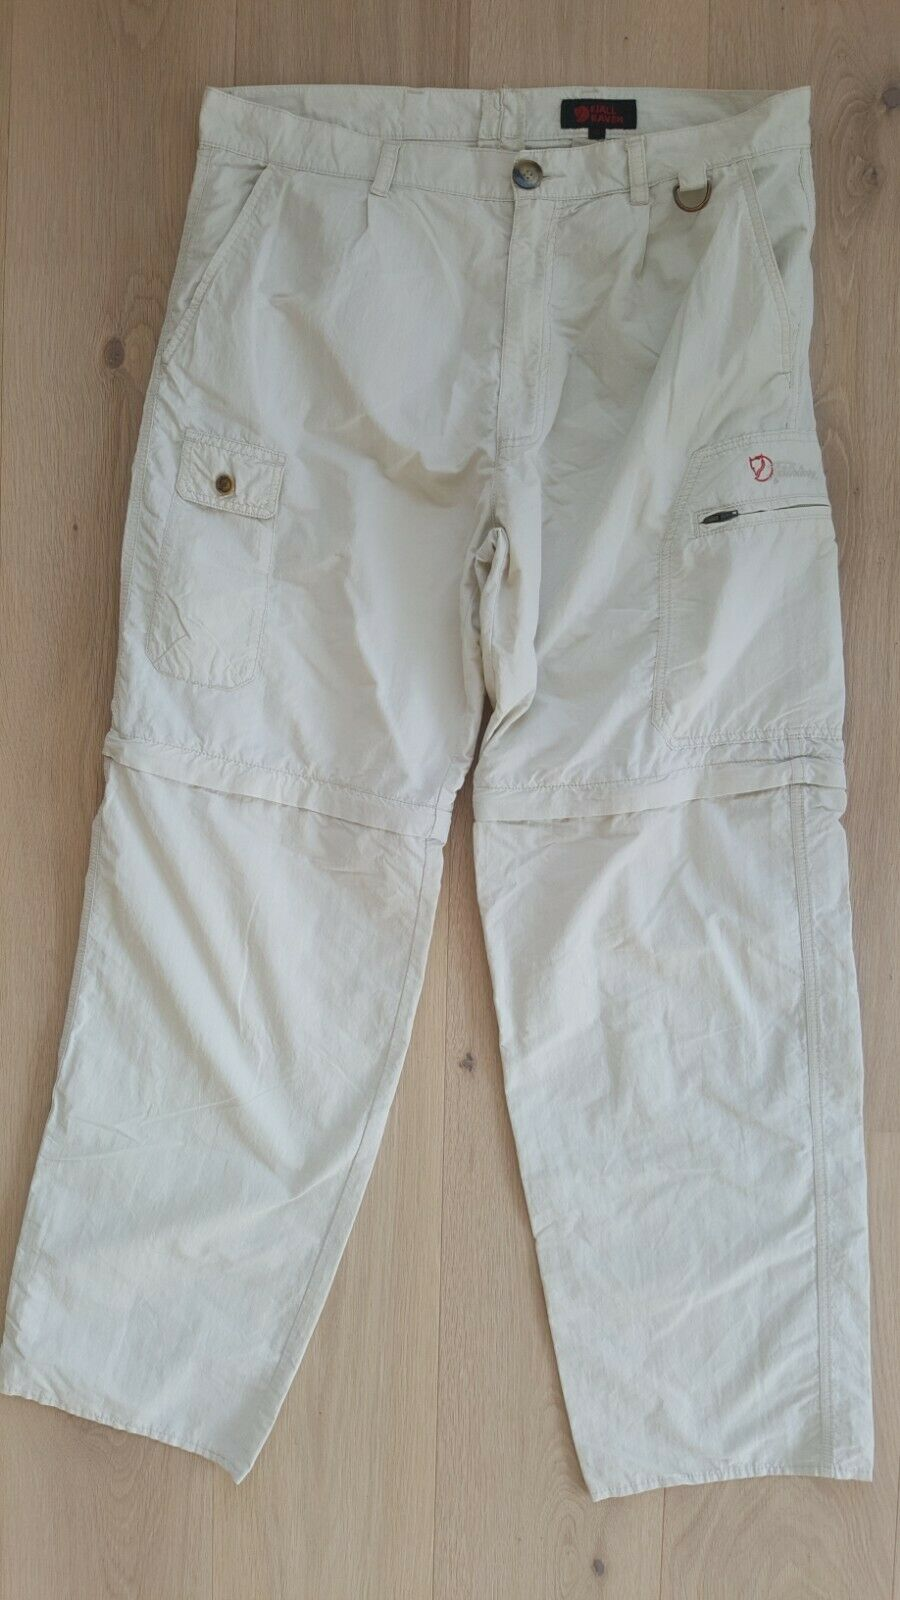 Fjallraven Hiking Pants Trekking Trousers mannen's afmeting 52